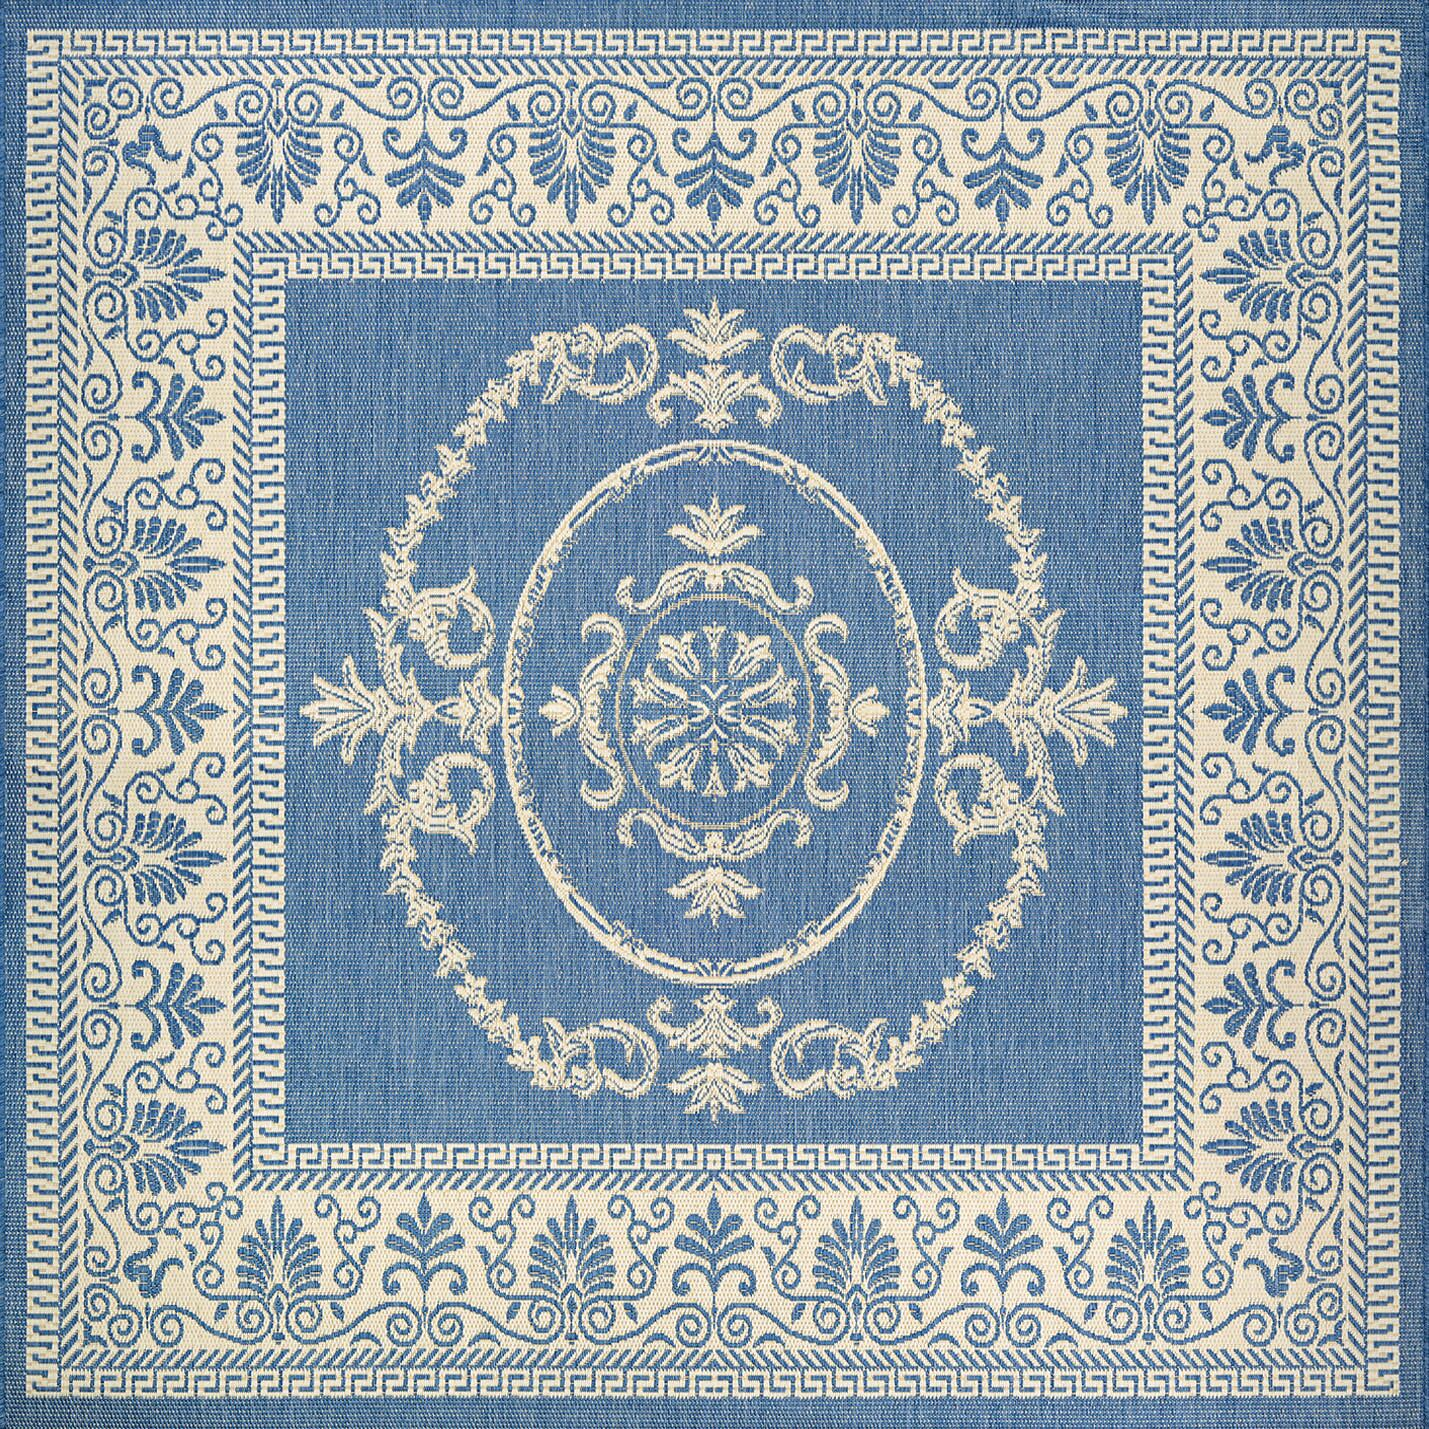 Miley Blue Indoor/Outdoor Area Rug Rug Size: Square 7'6